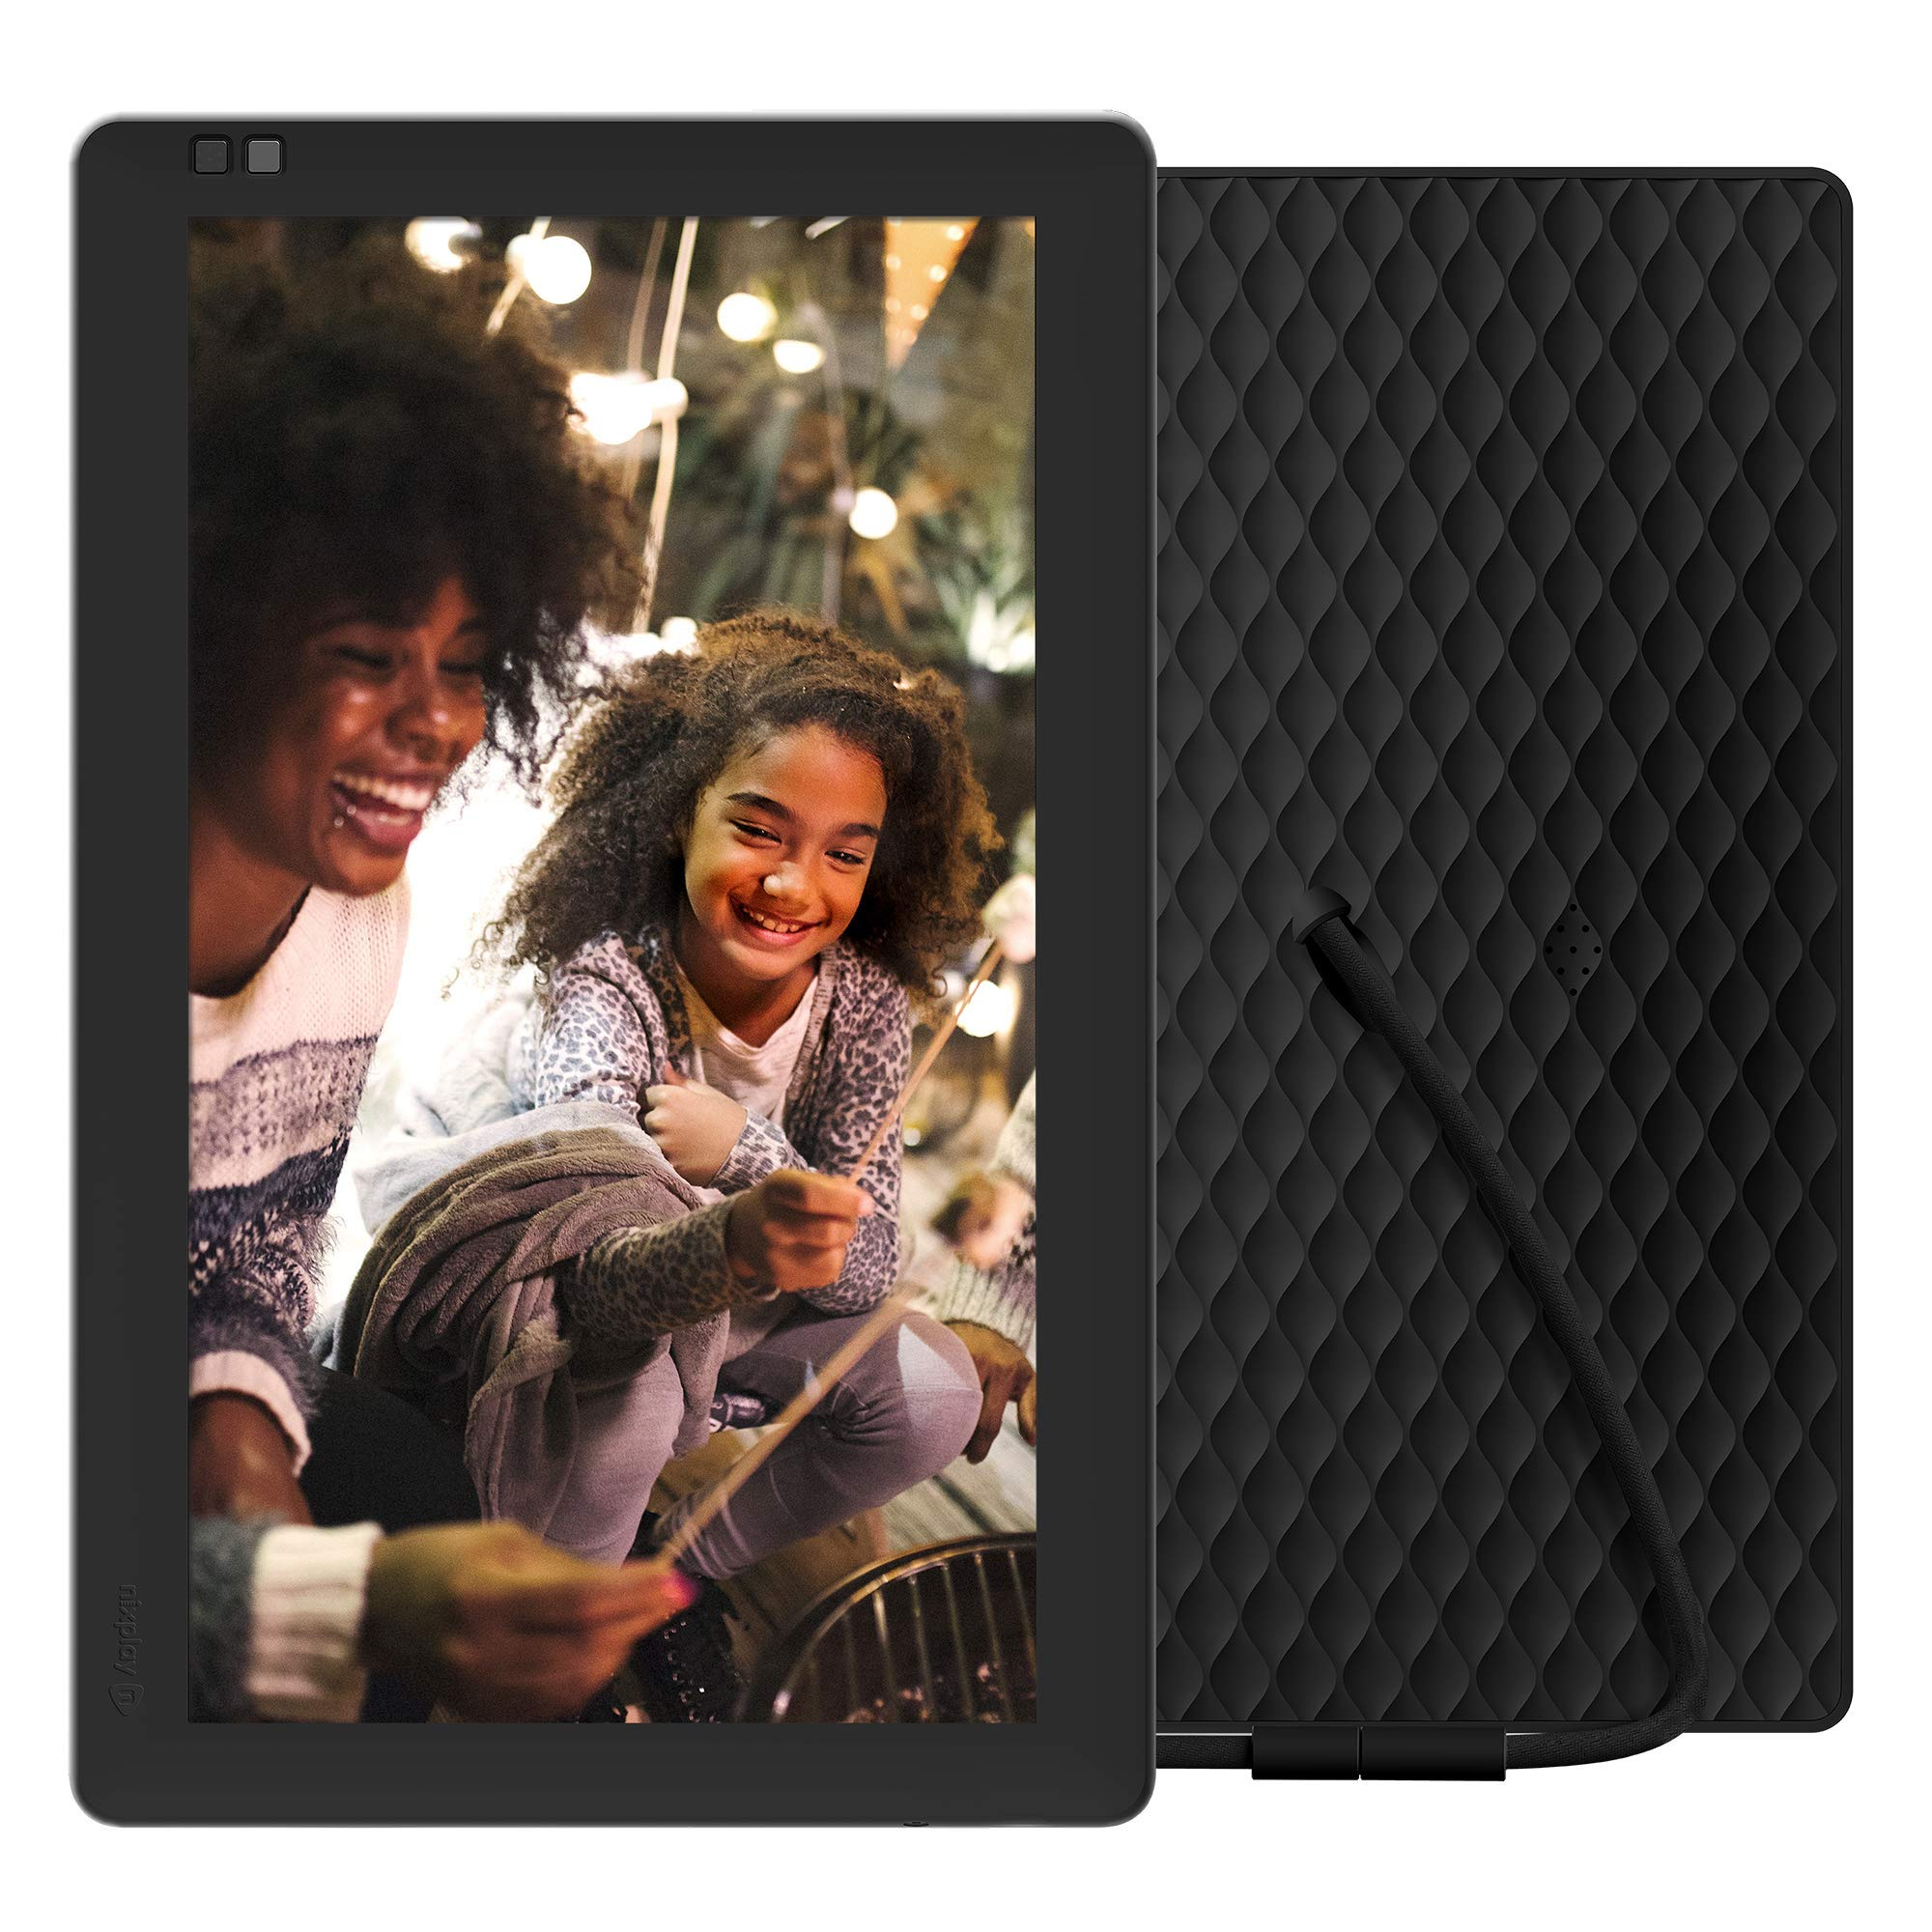 NIXPLAY Seed Digital Photo Frame WiFi 10 inch Widescreen W10B. Show Pictures on Your Frame